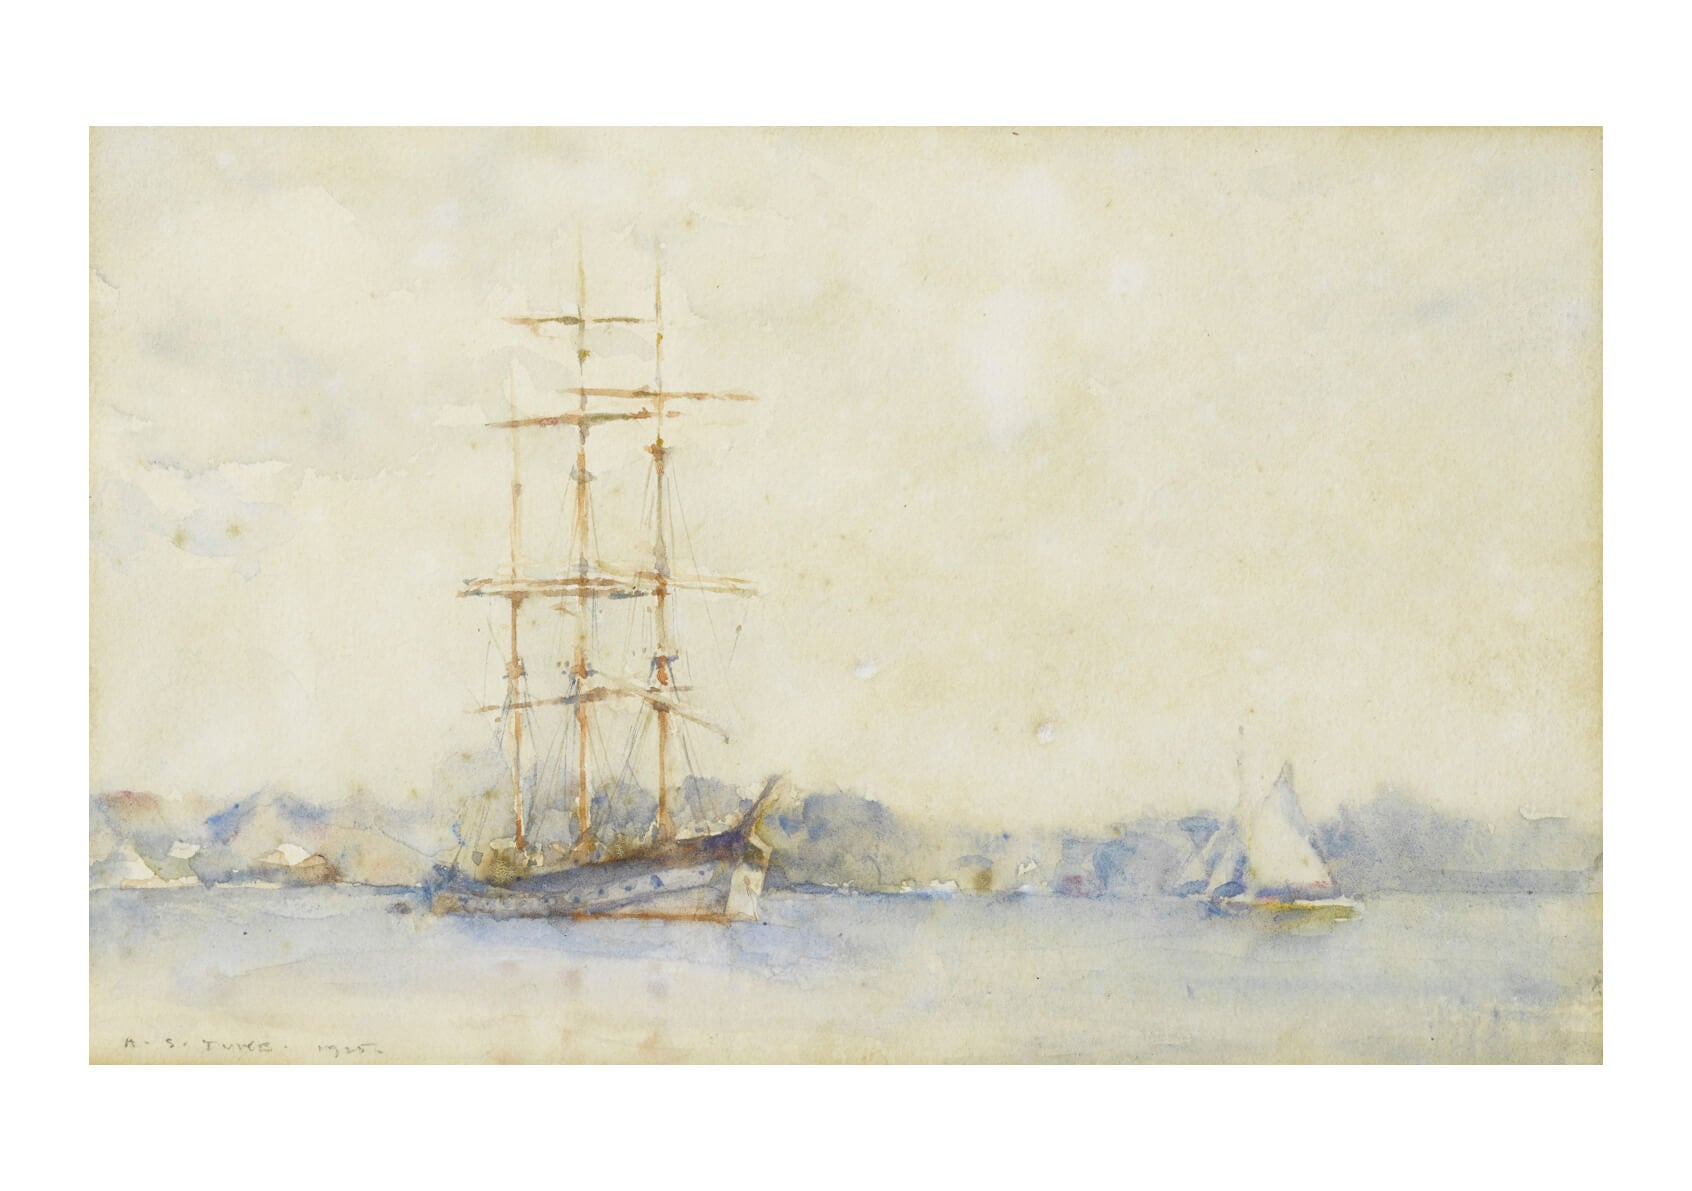 Henry Scott Tuke - A three masted barque in an estuary